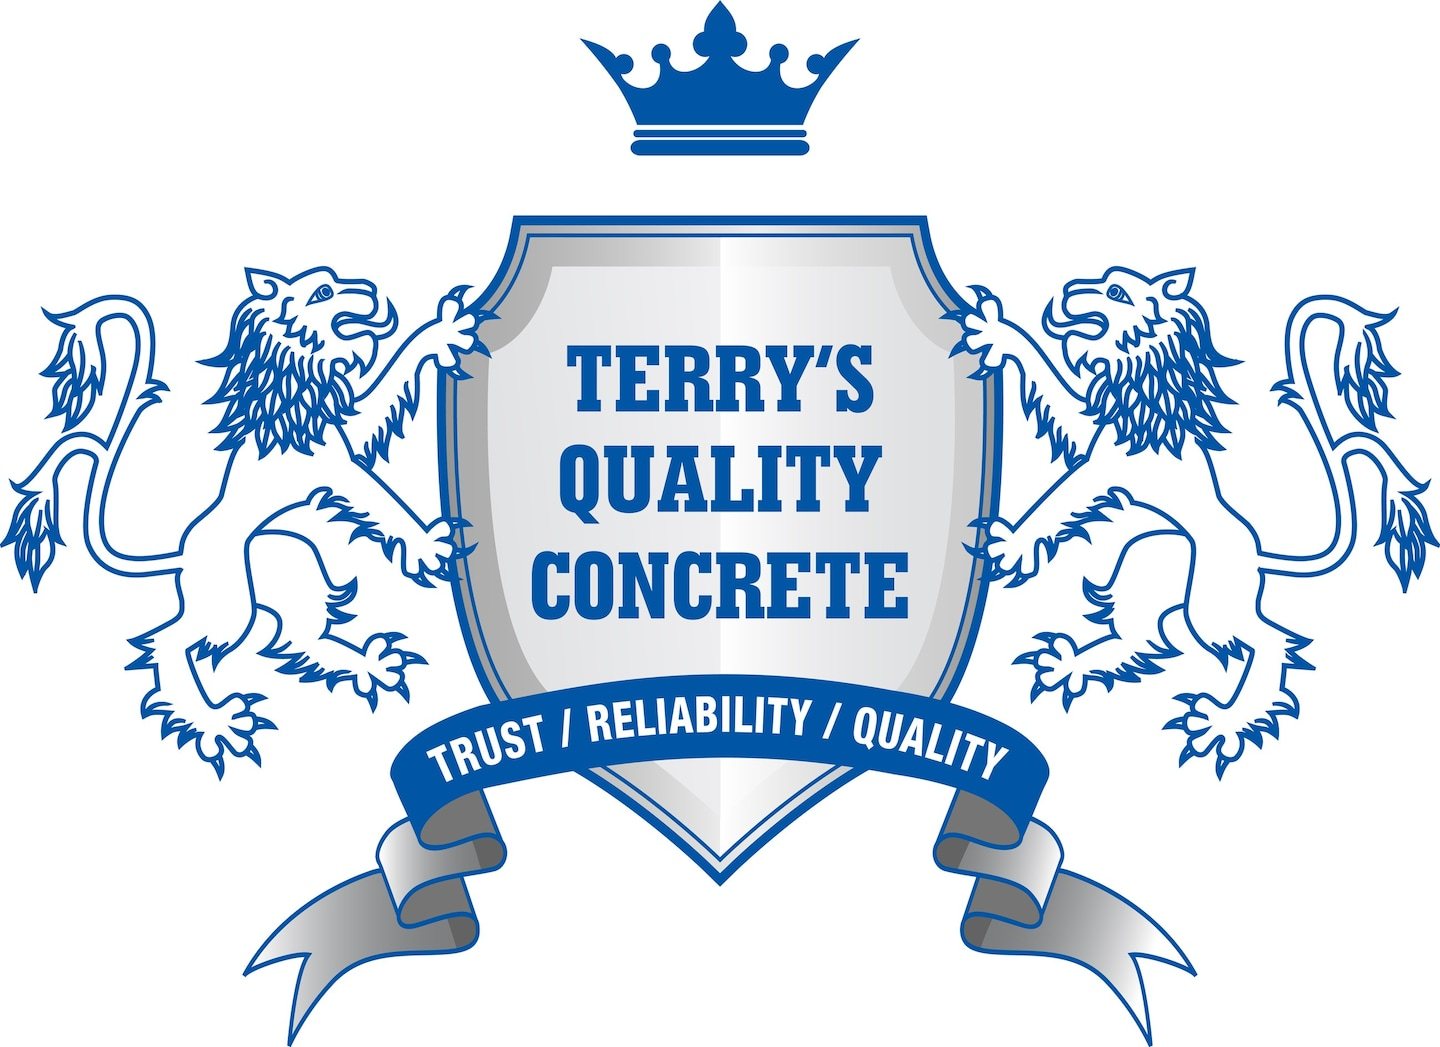 Terry's Quality Concrete